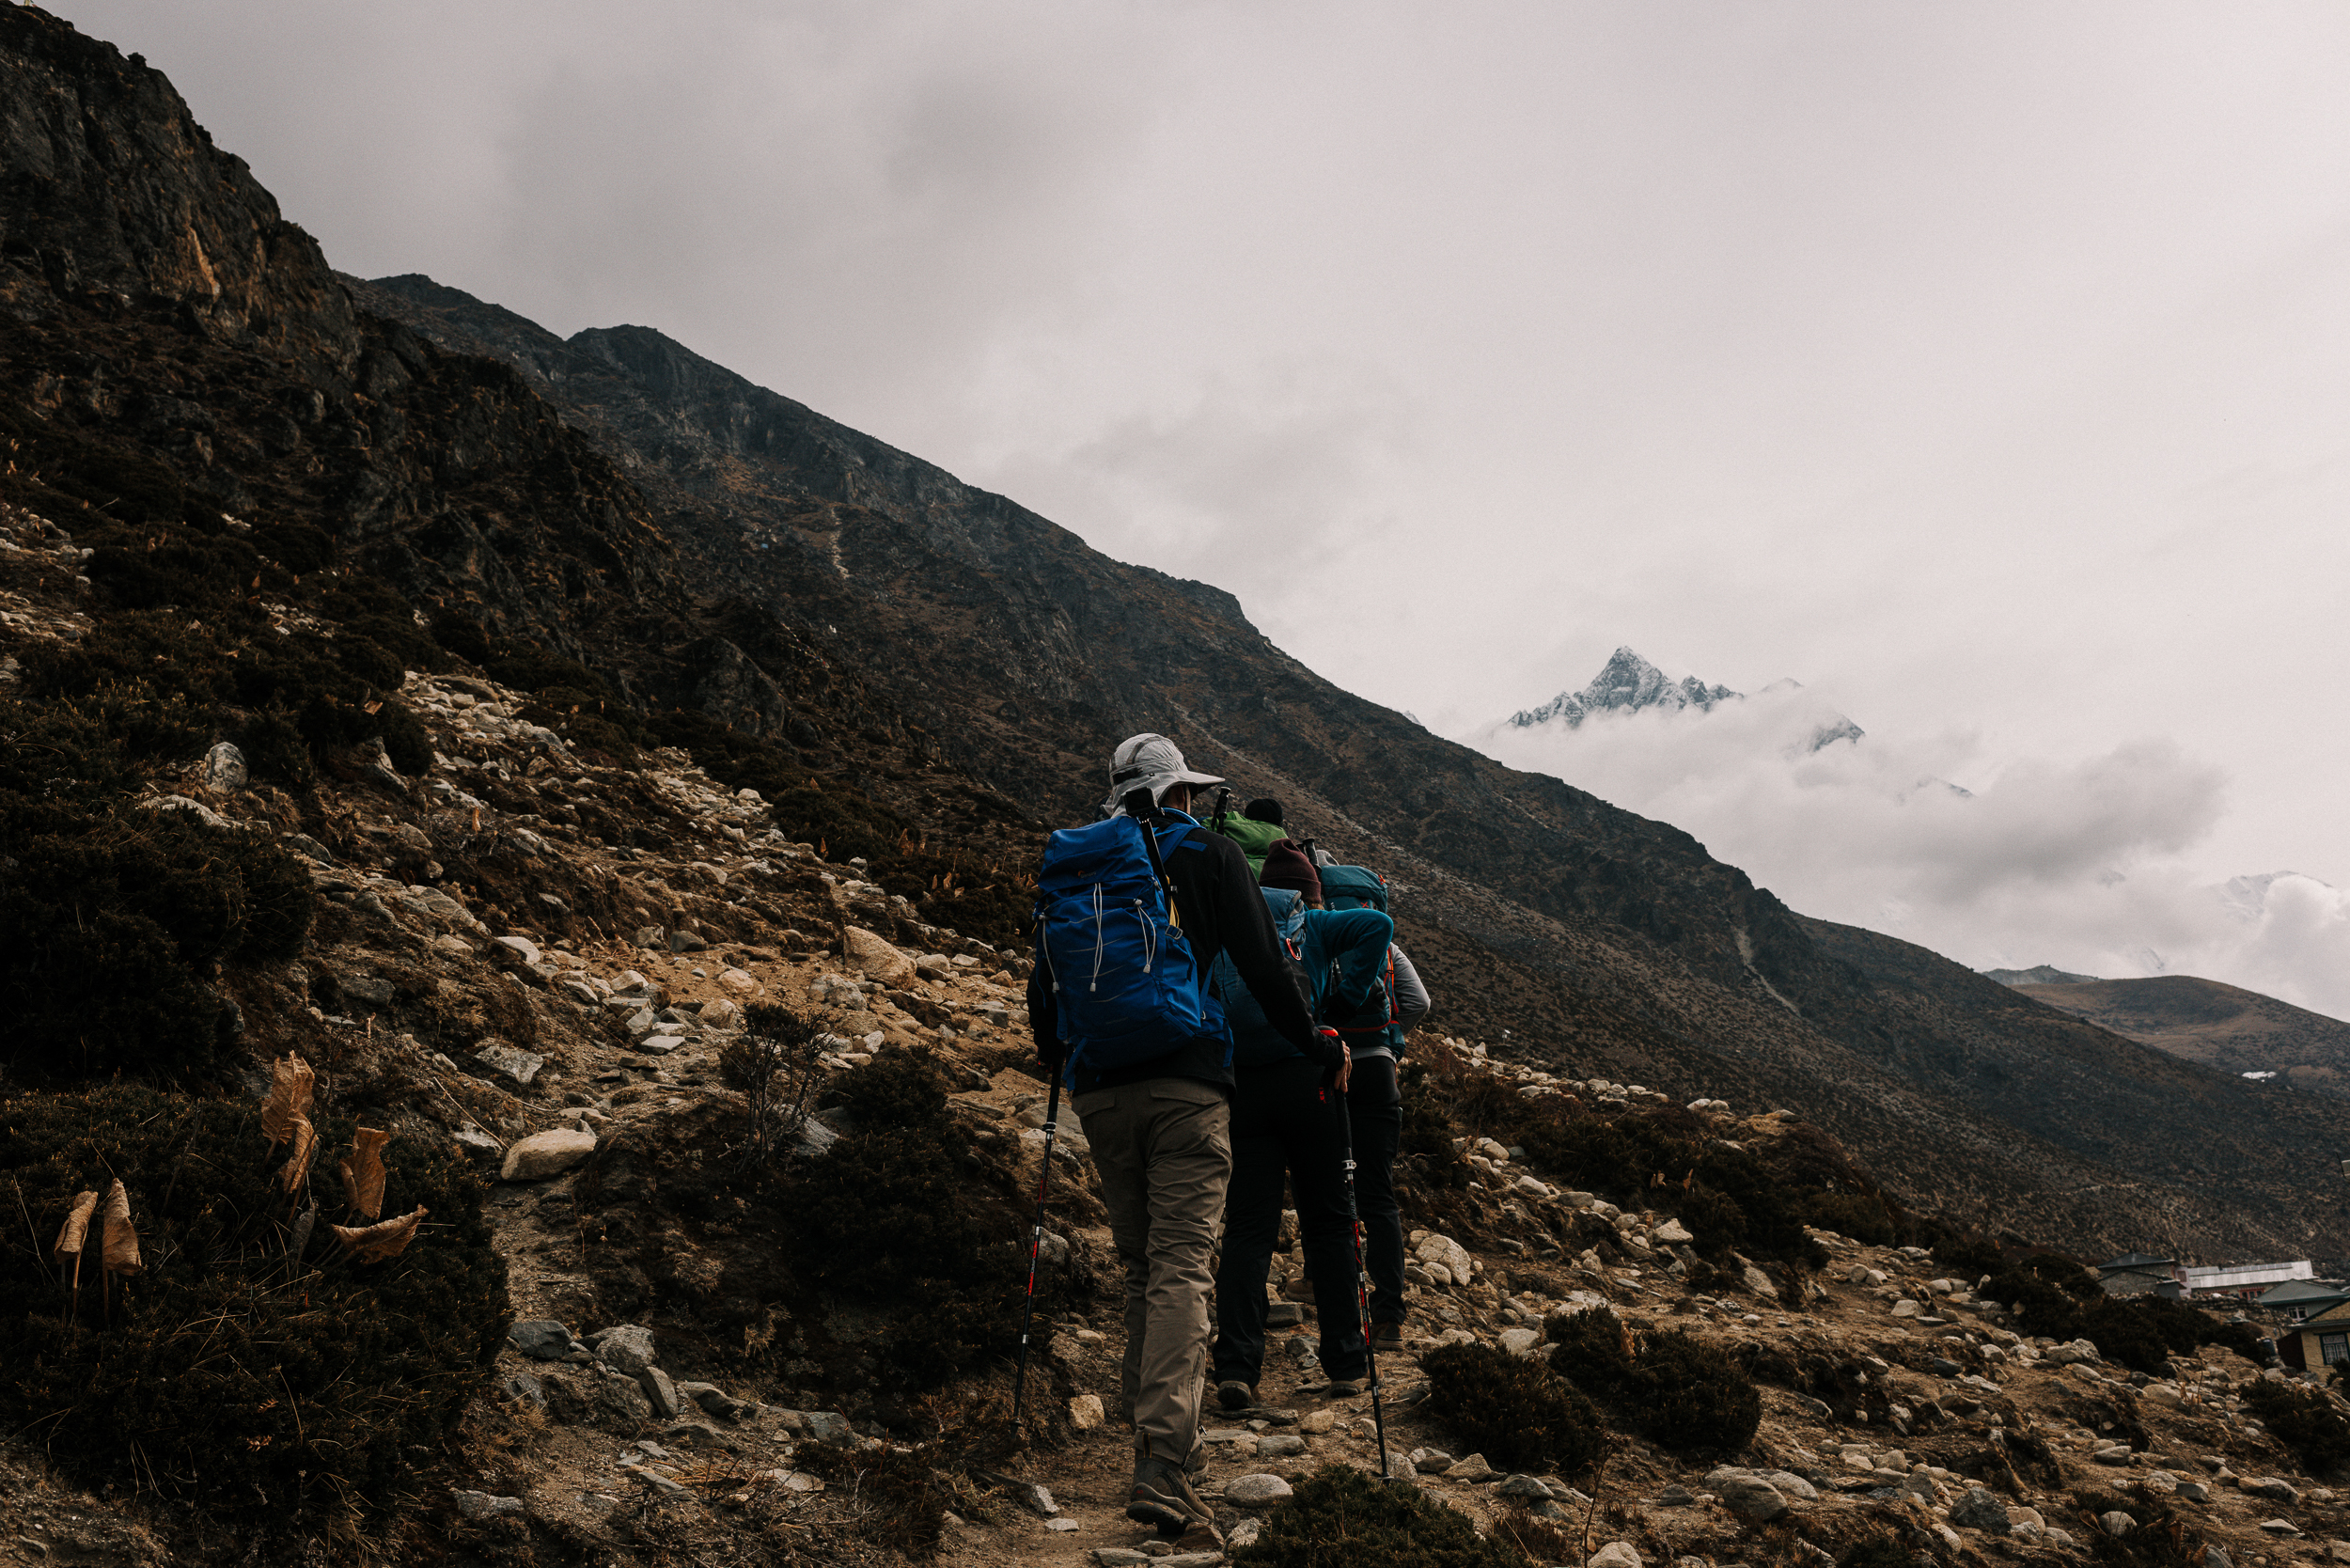 Nepal_EverestBaseCamp_2019_TaraShupe_Photography_DSC_3959.jpg